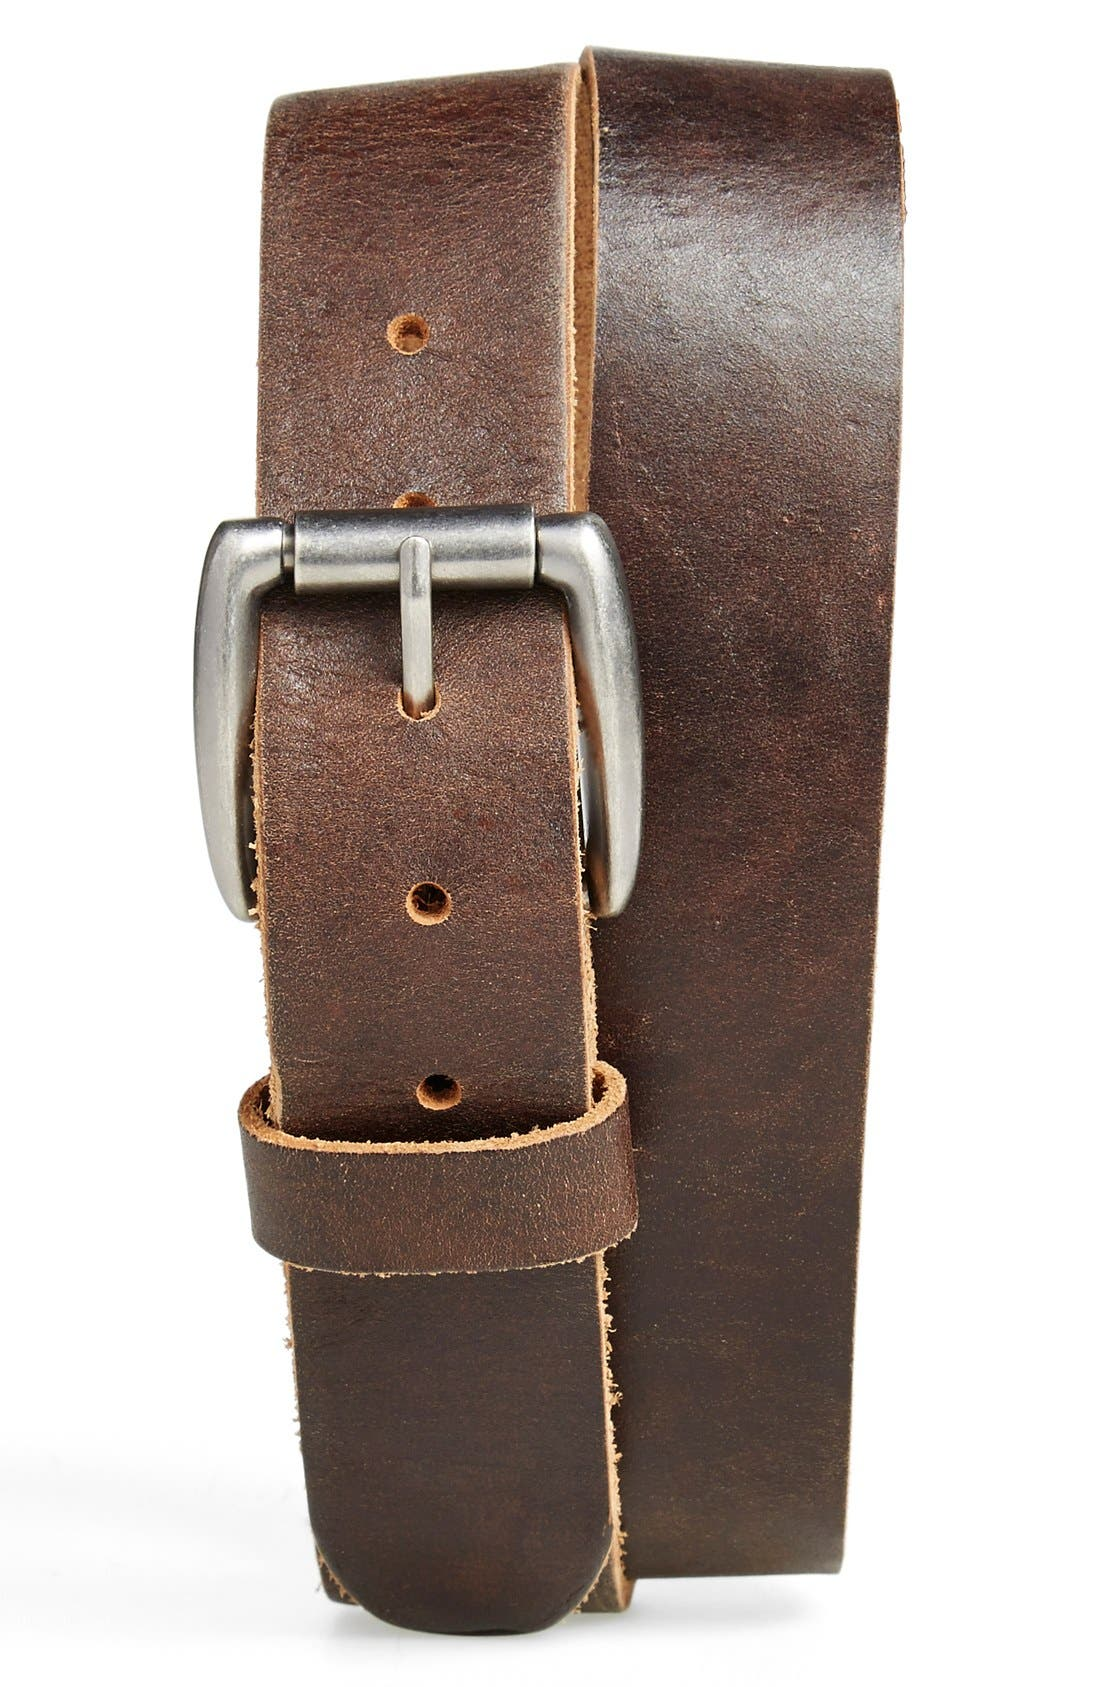 Main Image - Bill Adler 1981 Roller Buckle Belt